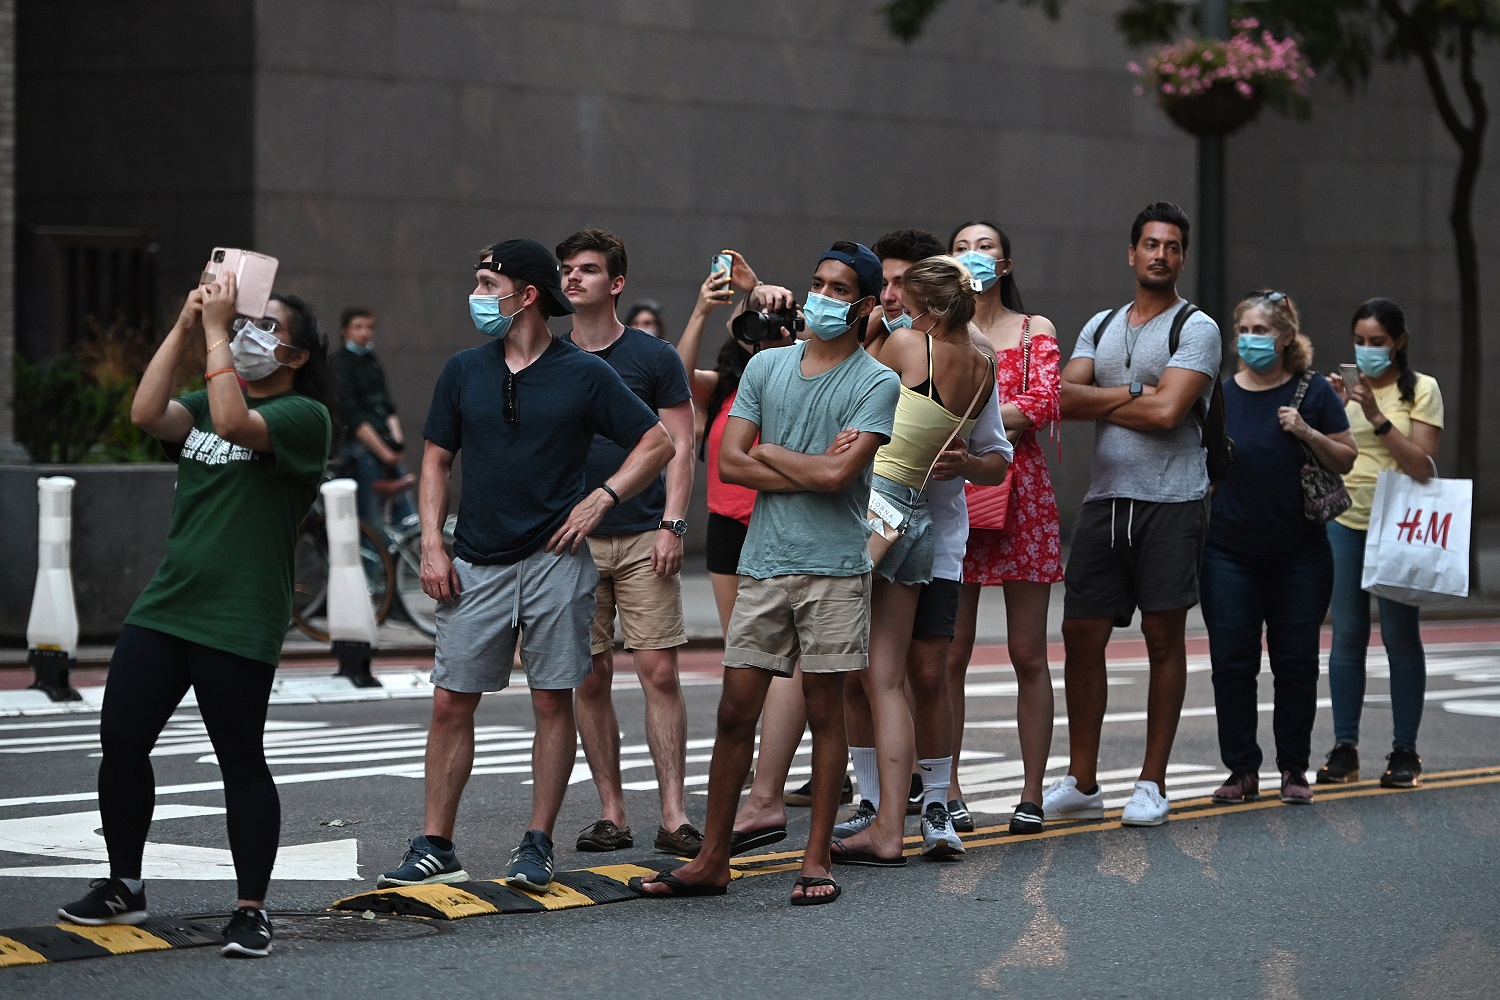 """Some wearing face masks in the time of COVID-19, people line up along the median strip along 42nd Street and Second Avenue waiting for the sunset phenomenon known as """"Manhattanhenge"""", which was not viewable from that location for a second night in a row due to lingering storm clouds on the horizon, New York, NY, July 12, 2020. Manhattanhenge is the event during which the setting (or rising) sun aligns perfectly with east-west streets of the Manhattan island street grid, which occurs twice a year. (Anthony Behar/Sipa USA)No Use UK. No Use Germany."""